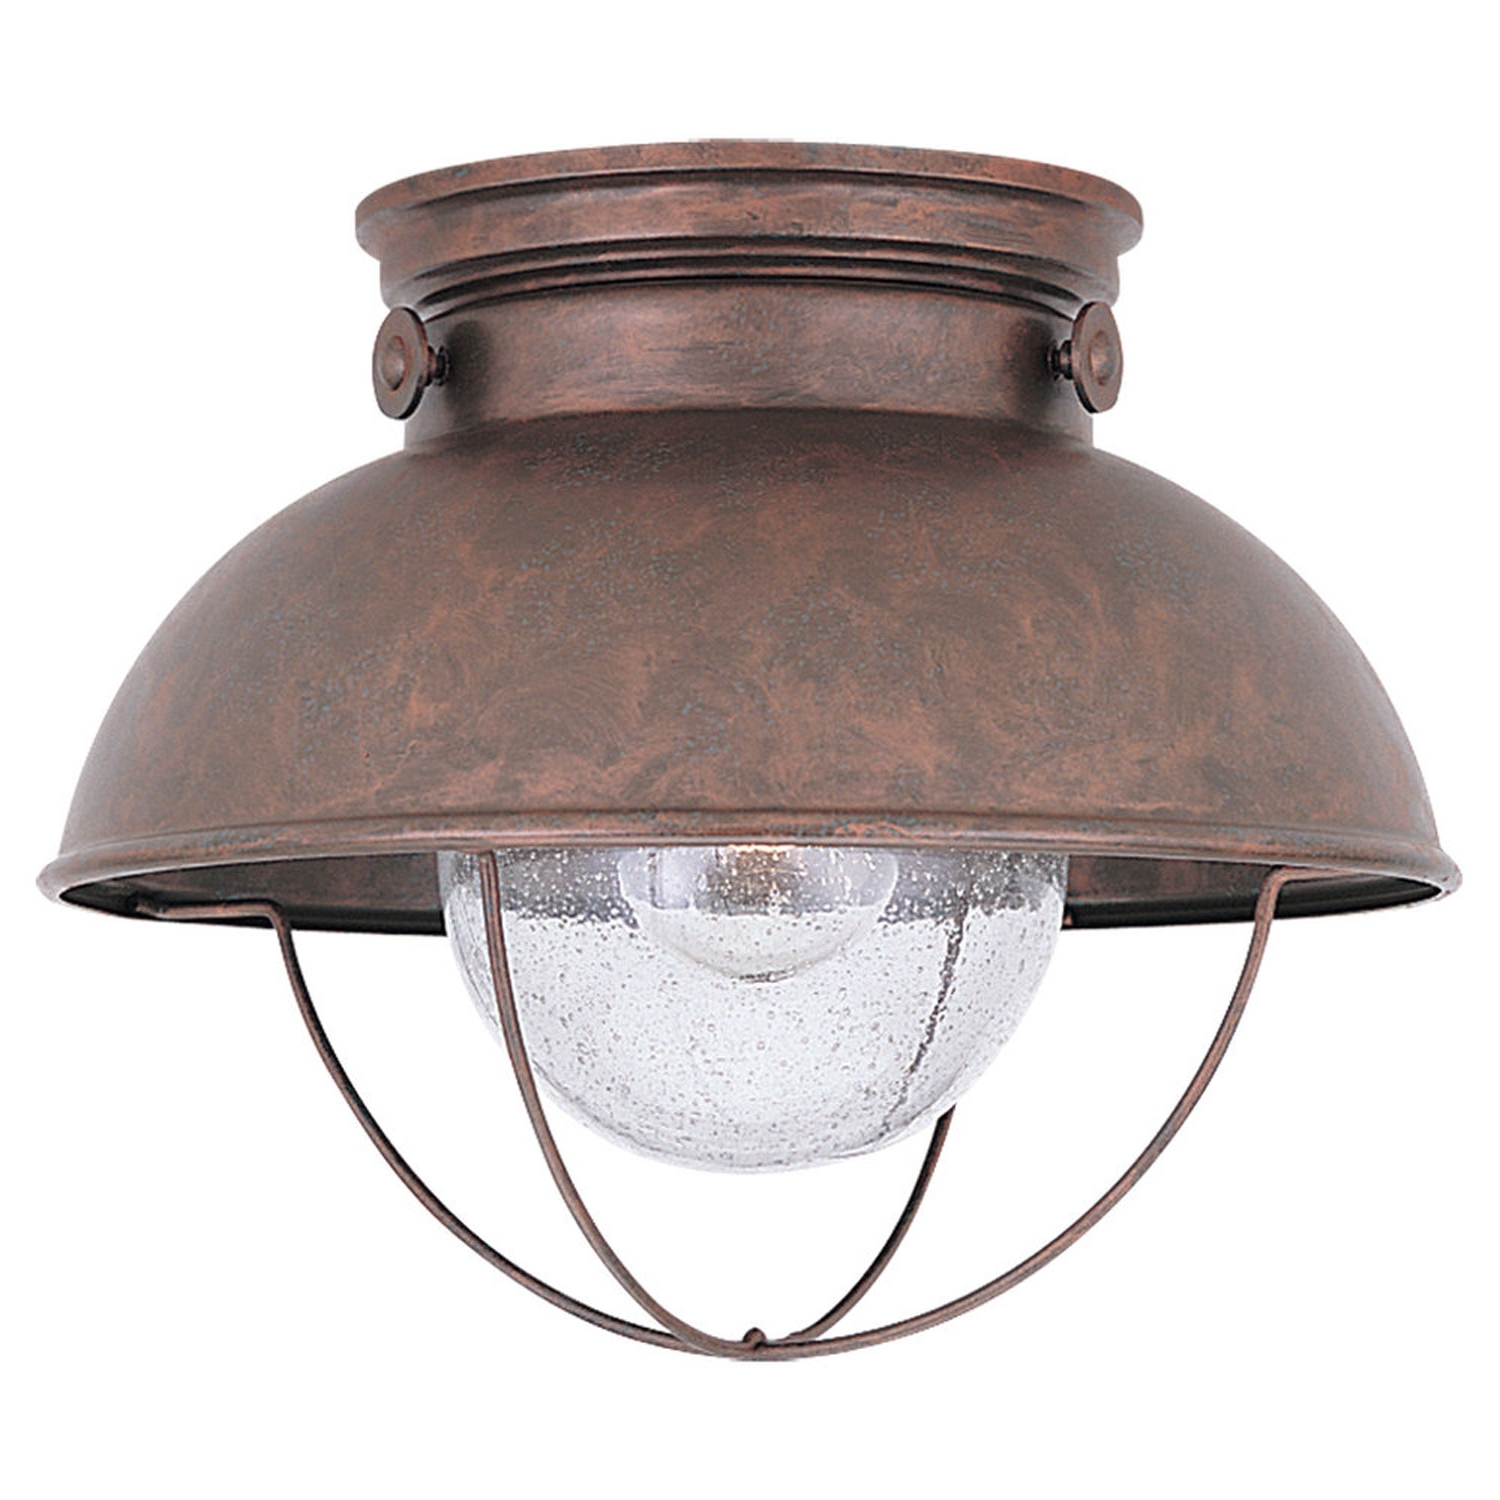 Famous Outdoor Ceiling Lighting (View 4 of 20)